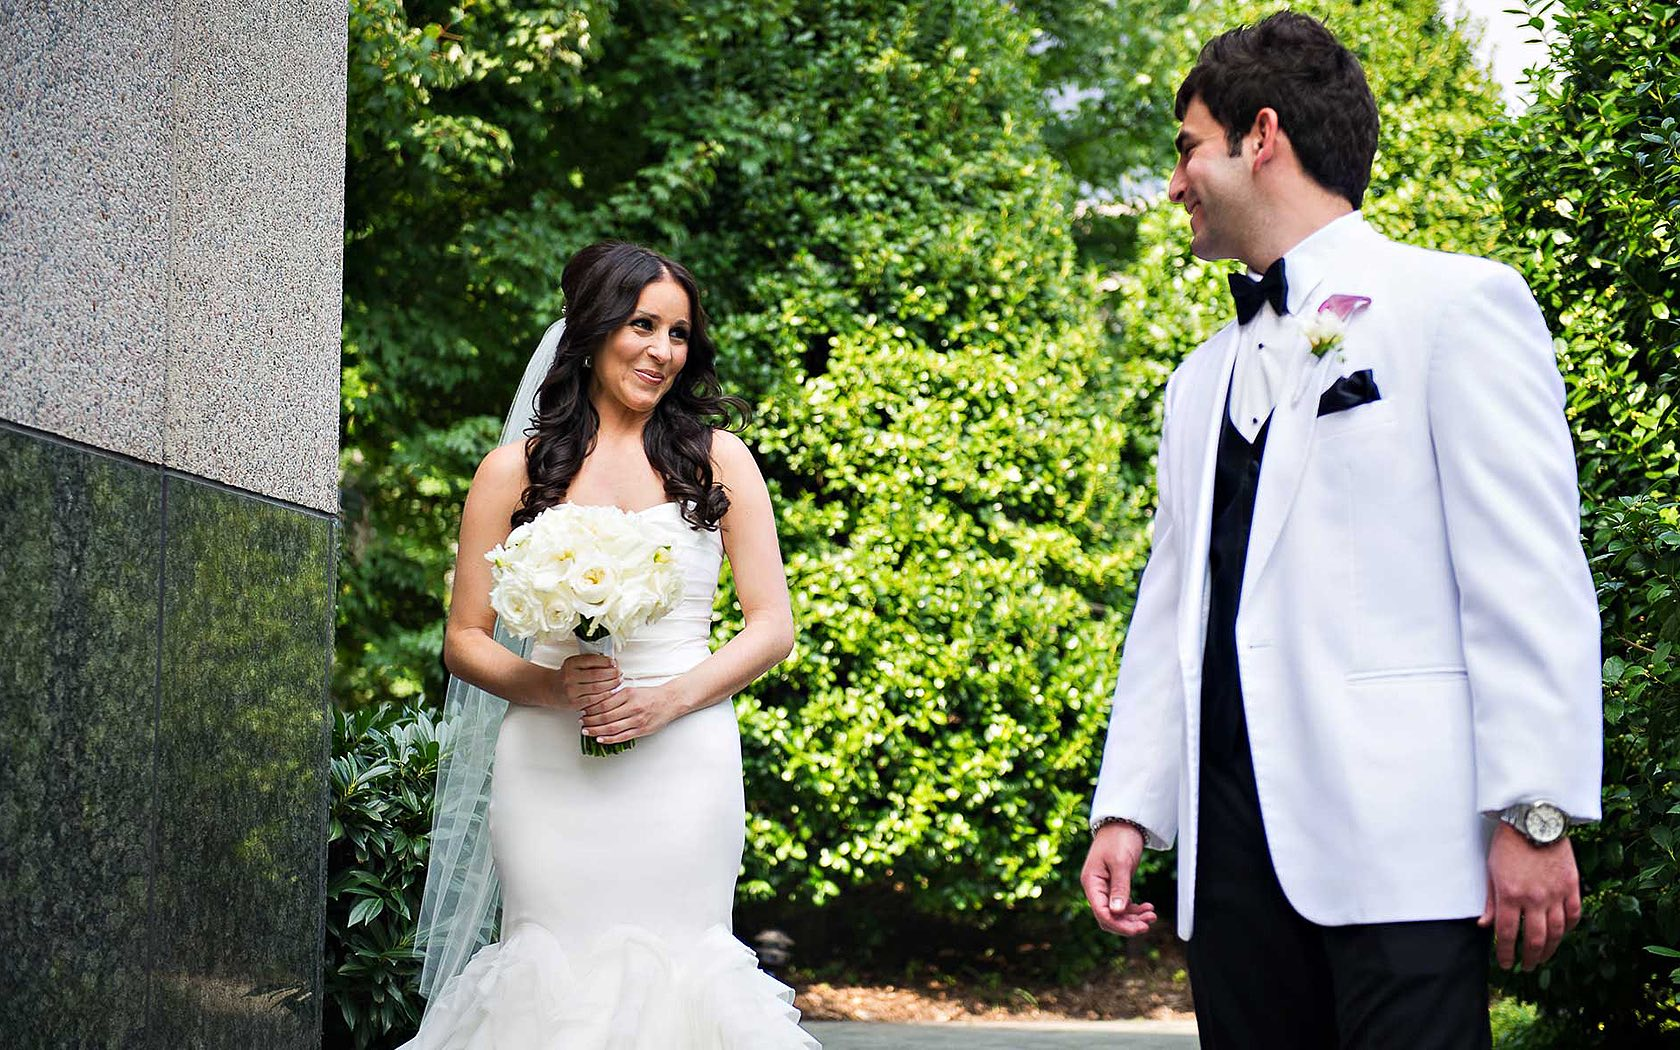 bride holding bouquet of white flowers and looking at groom lovingly